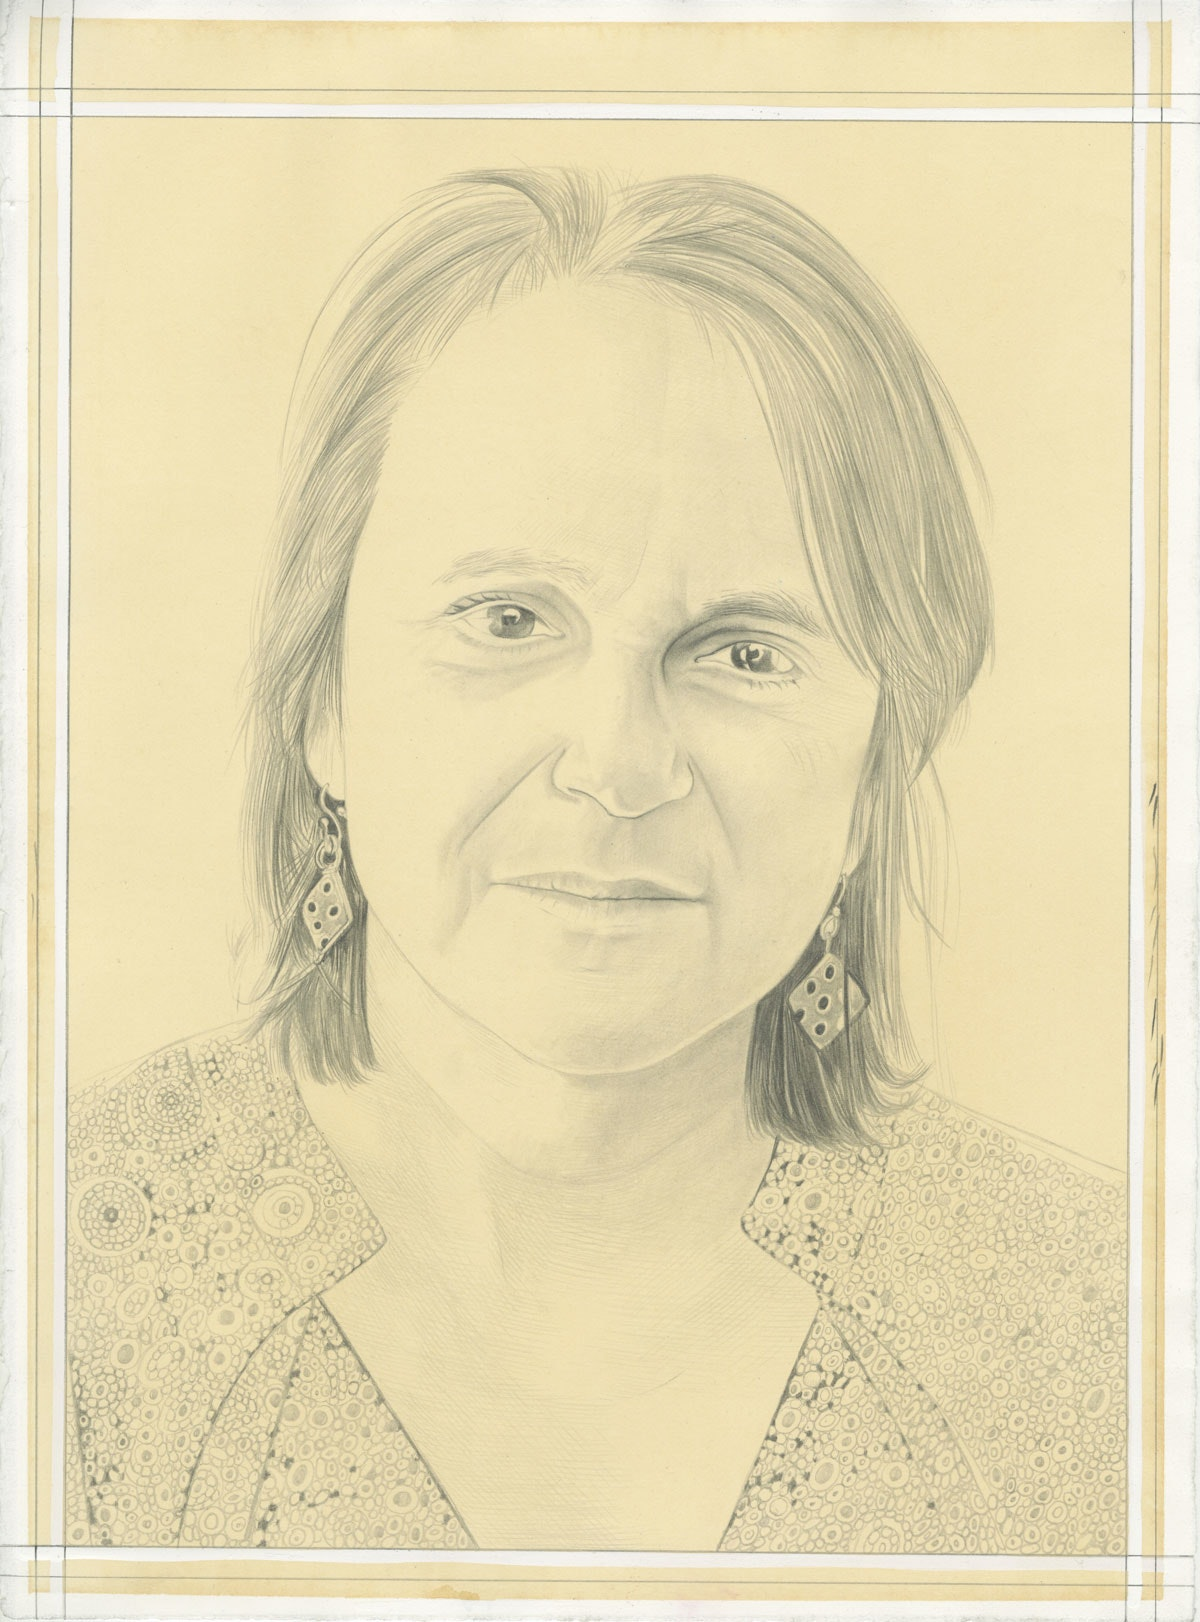 Portrait of Julie Reiss, pencil on paper by Phong Bui.